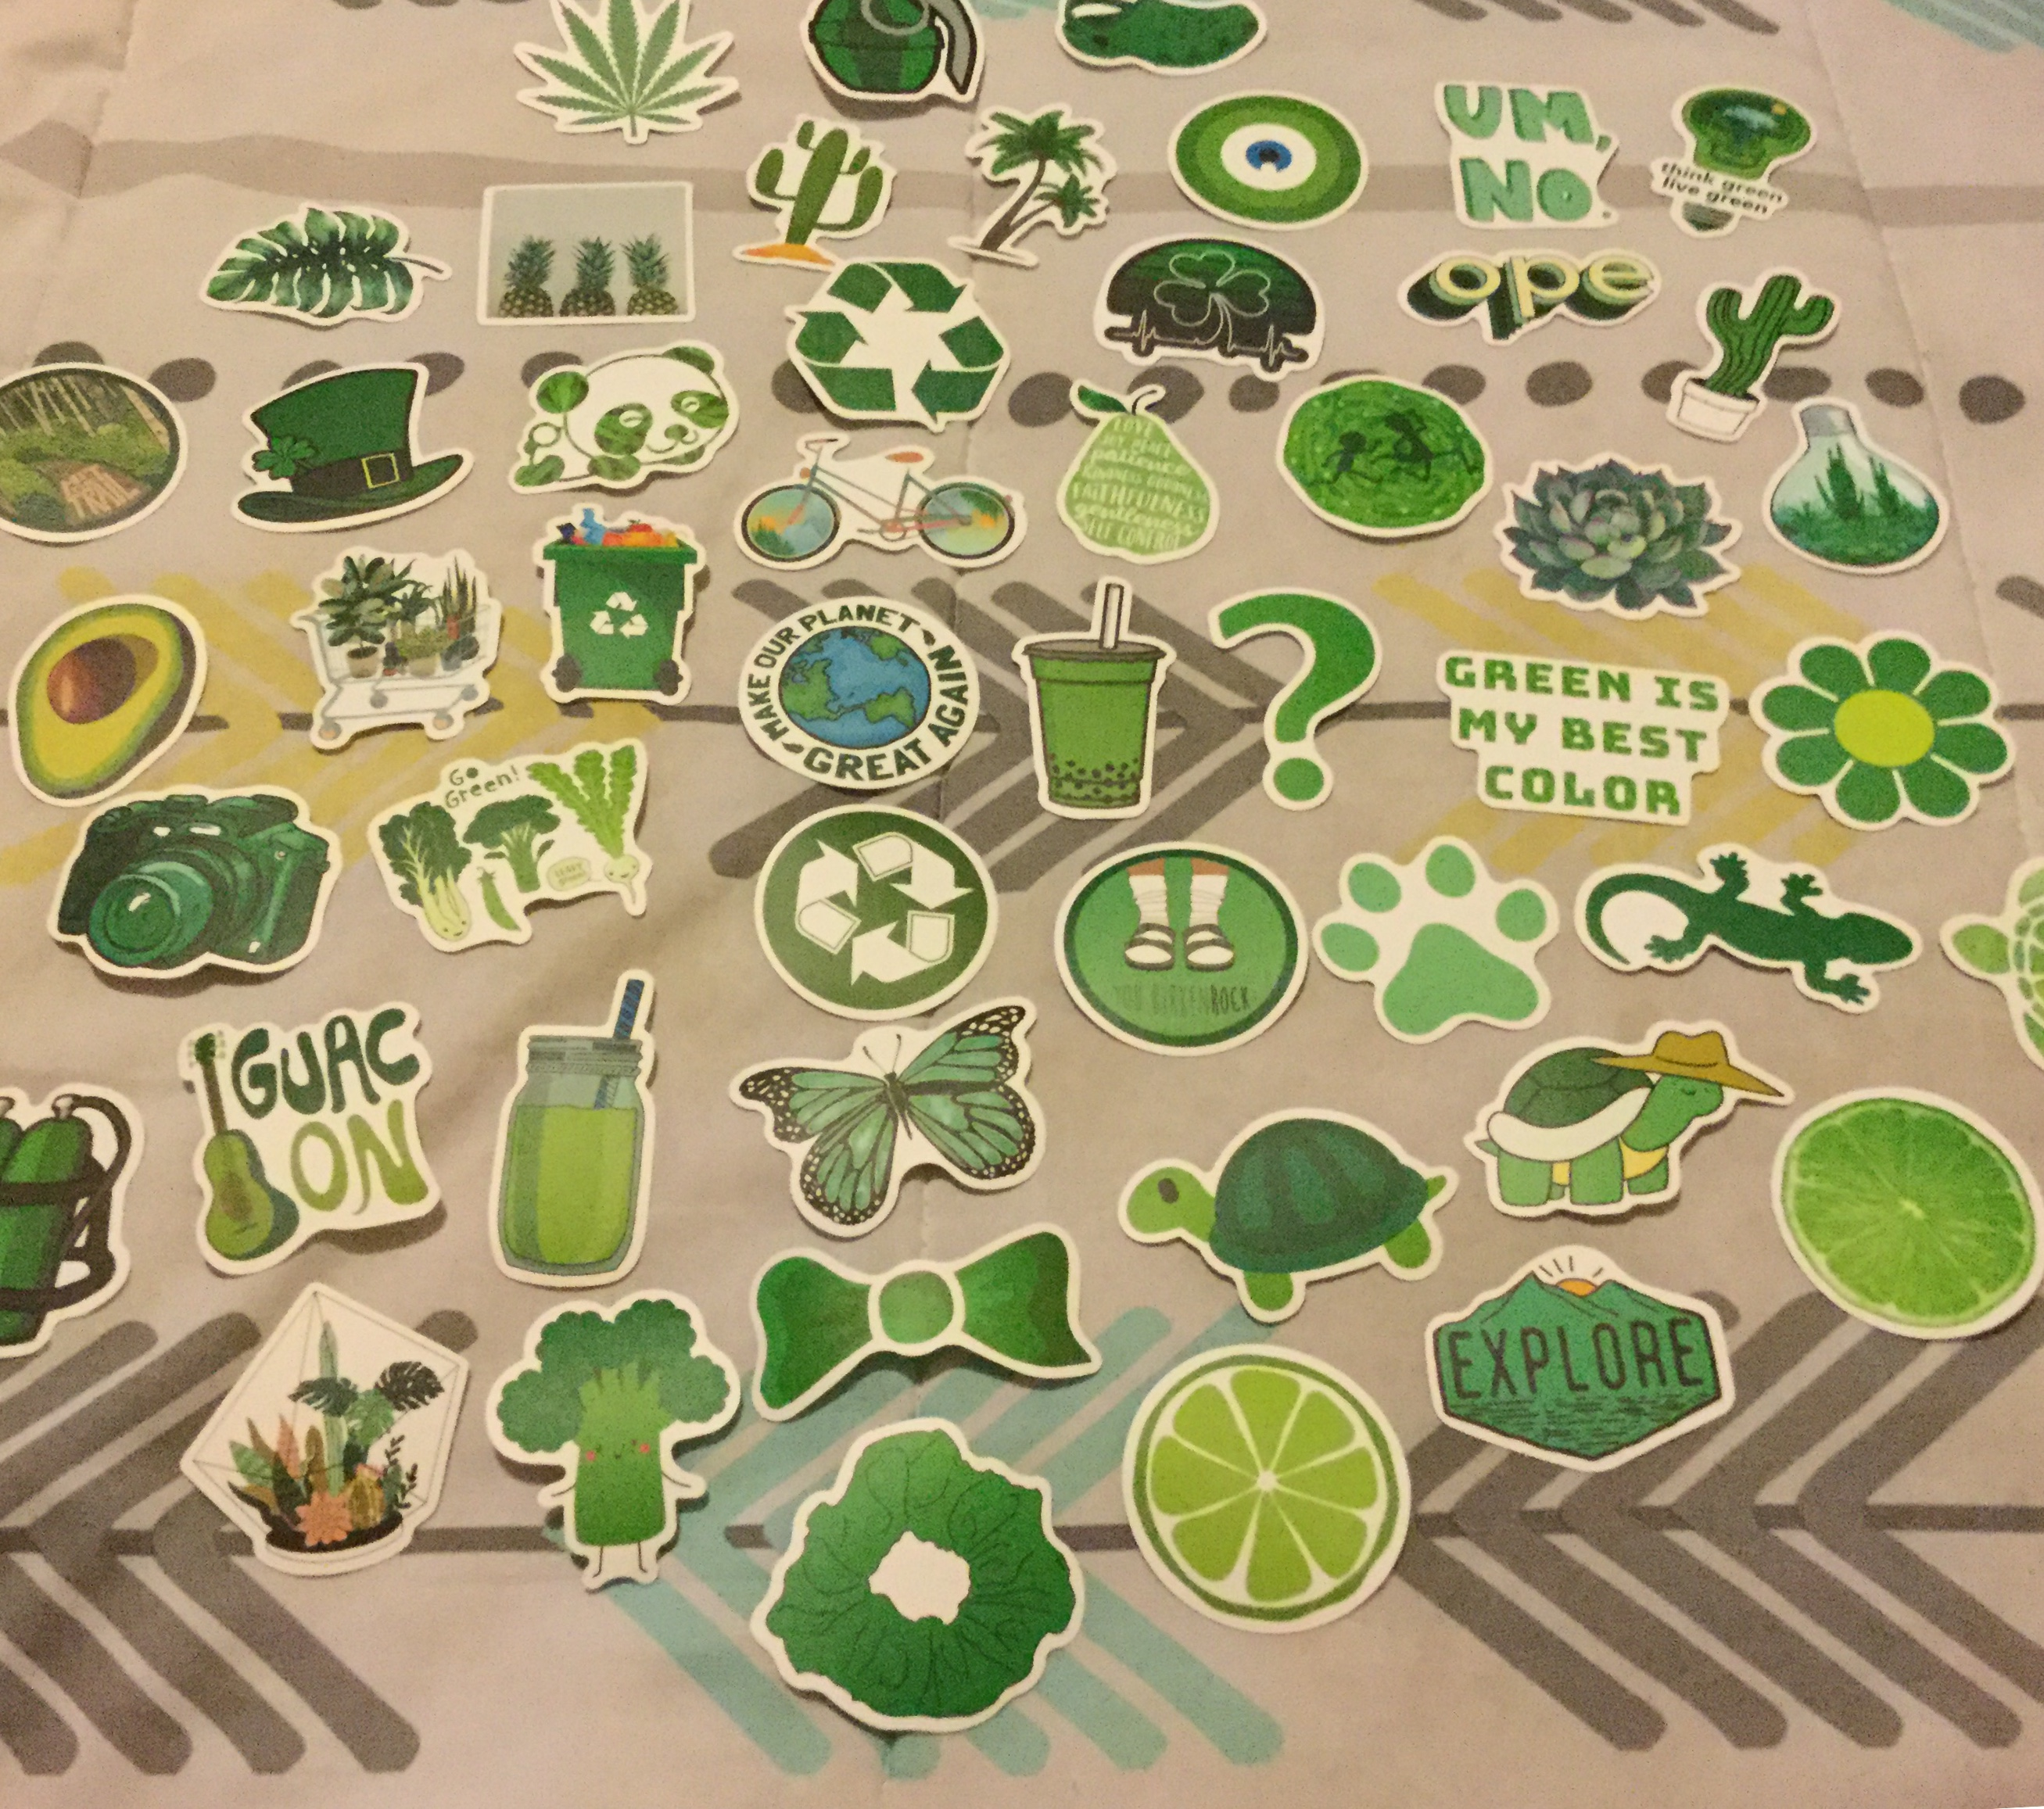 Lots of fun stickers